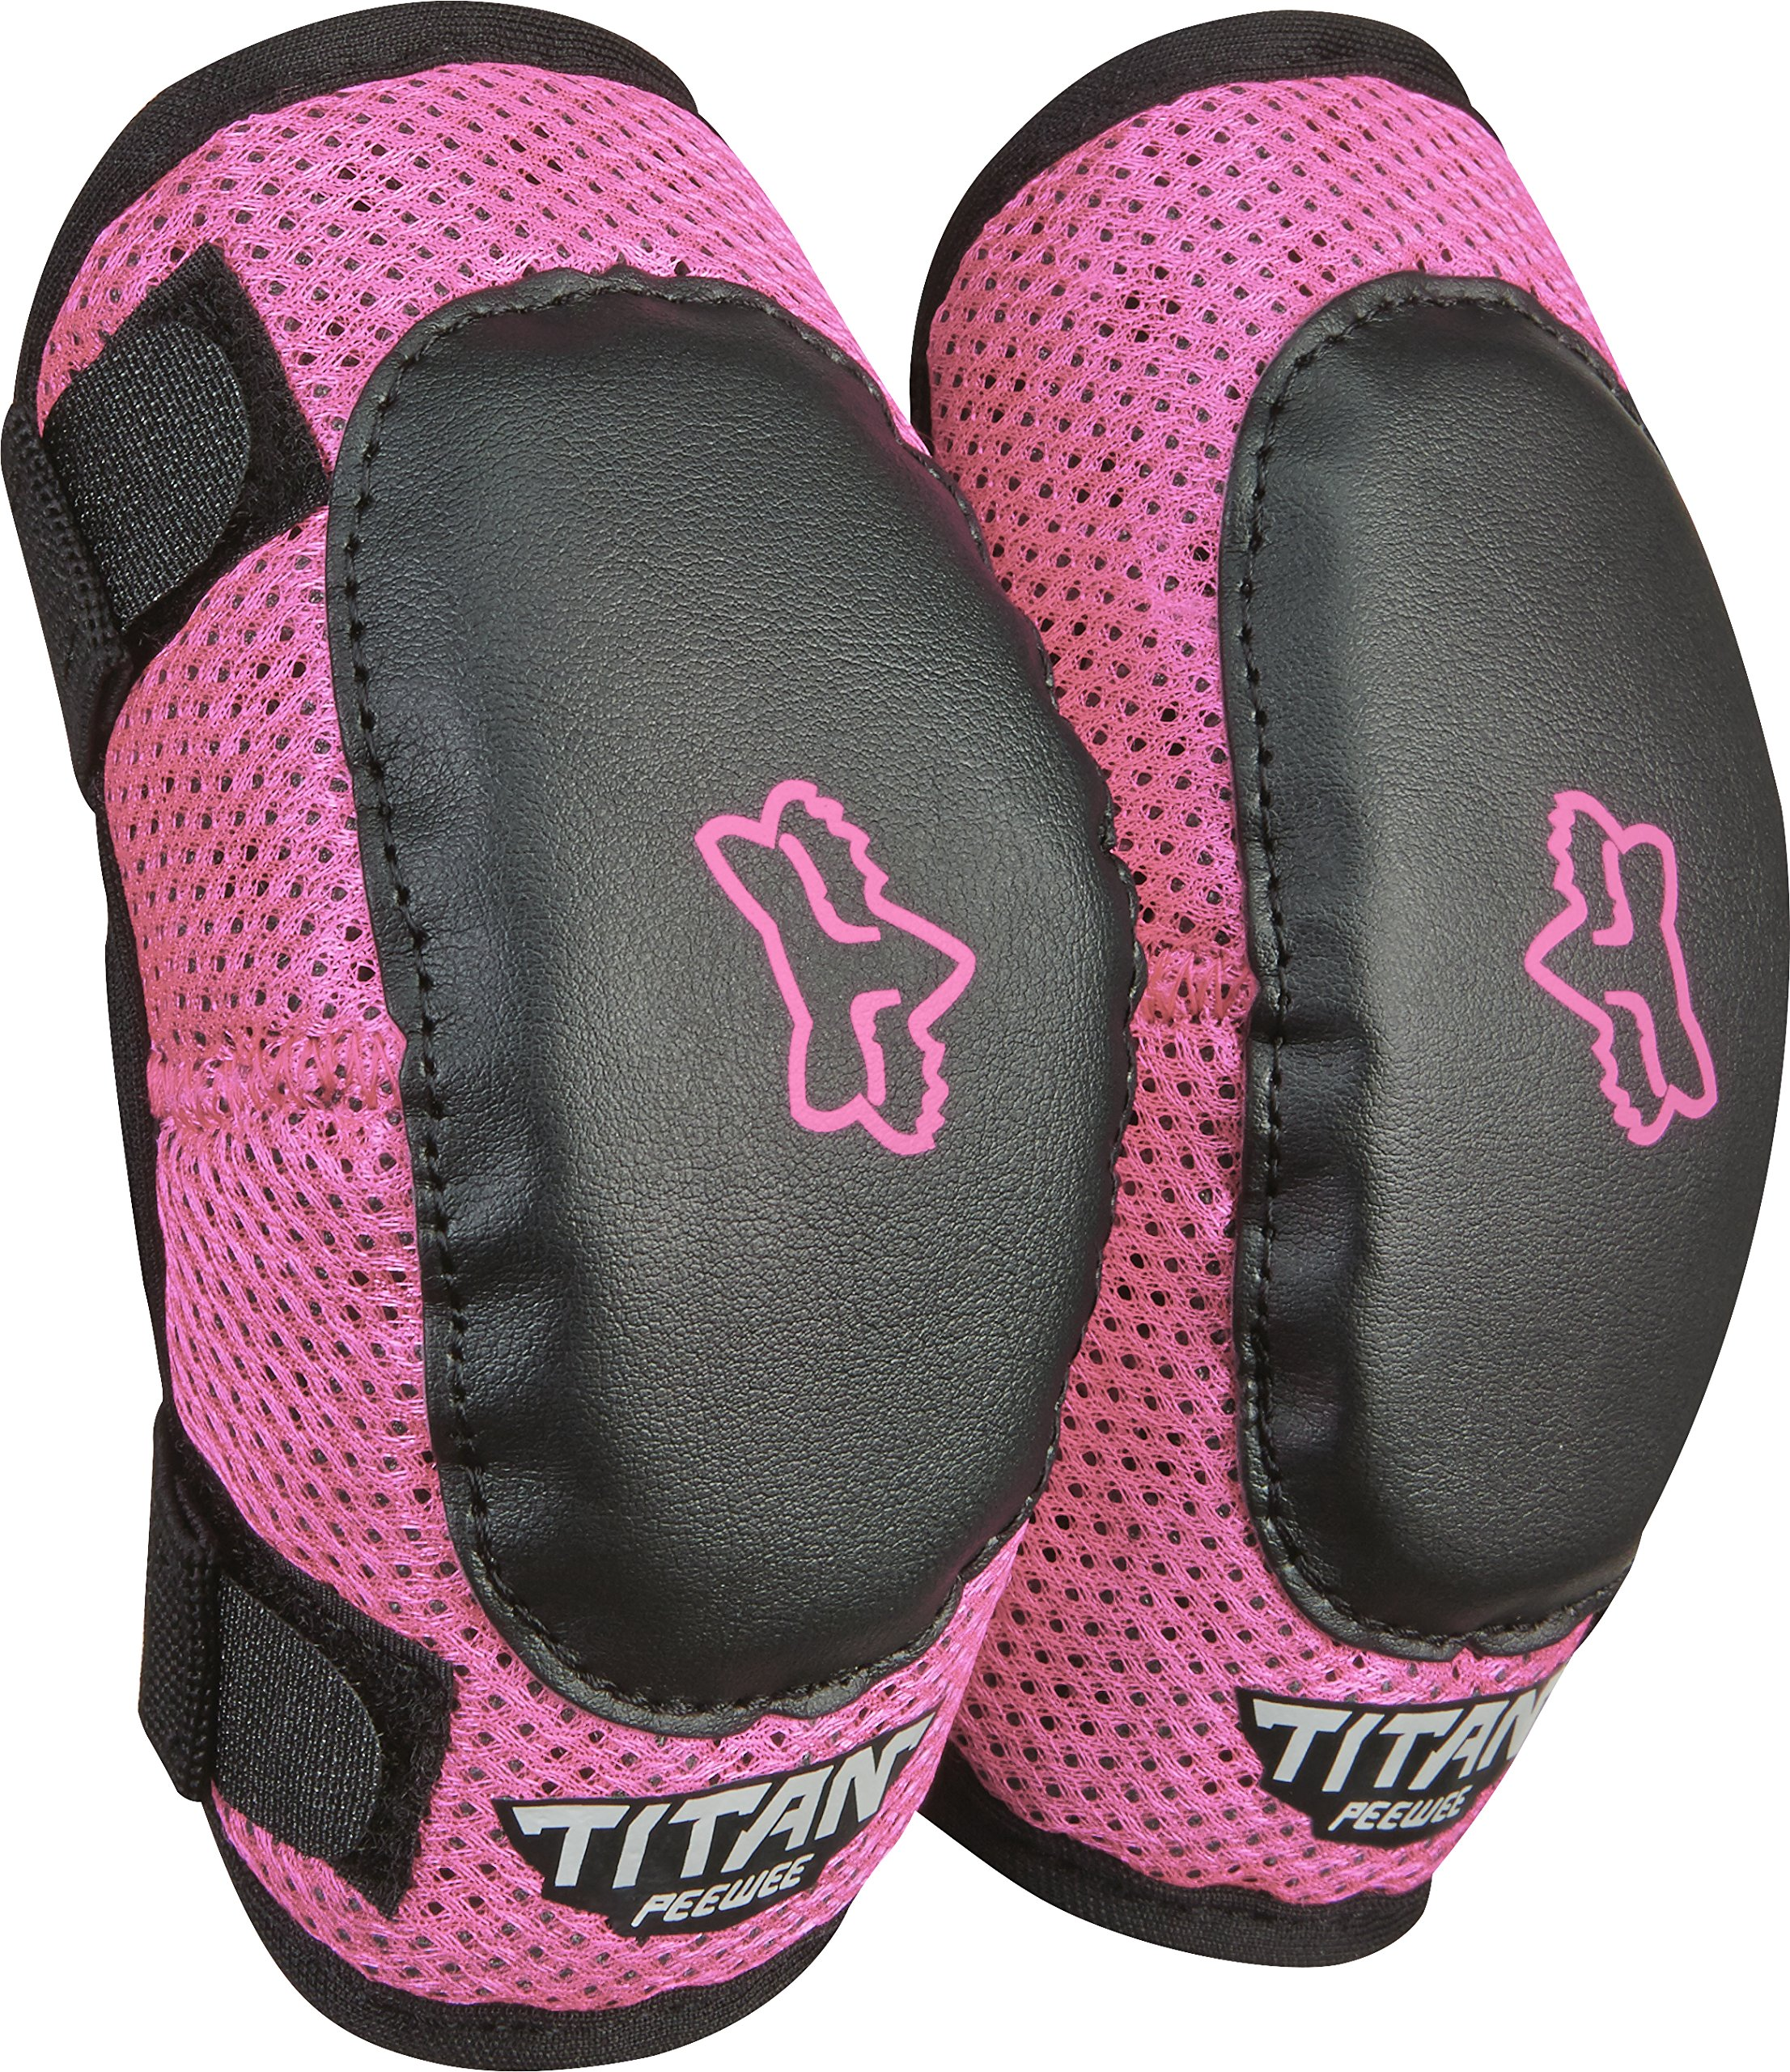 Fox Racing PeeWee Titan Elbow Guard M/L Blk/Pnk